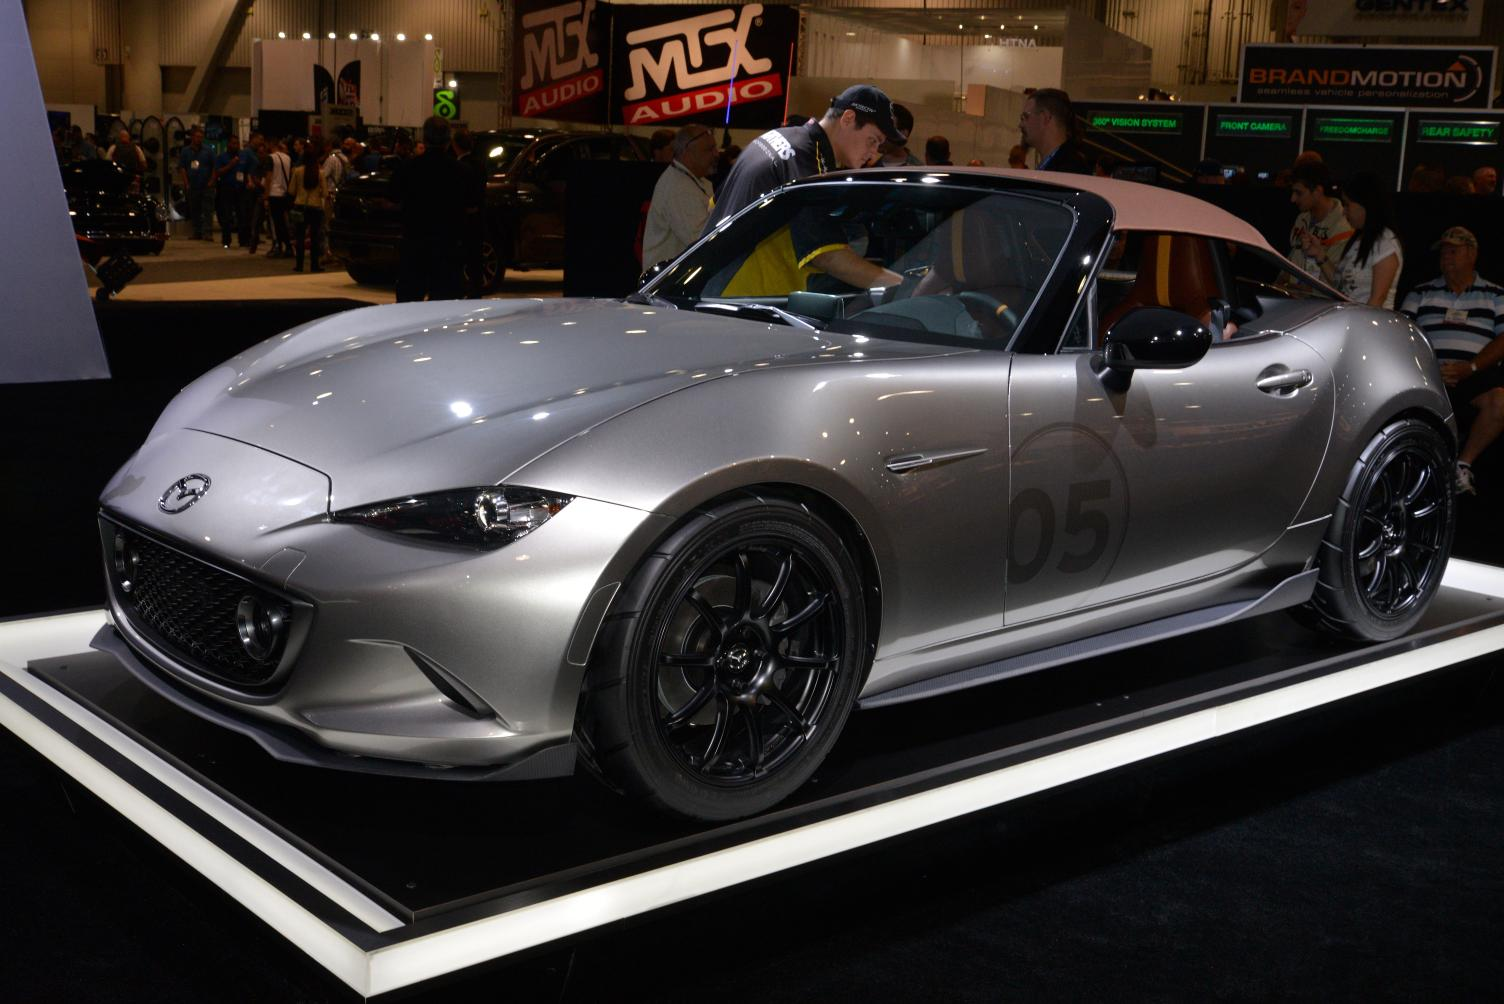 2016 mazda mx 5 speedster and spyder concepts stun sema live photos video autoevolution. Black Bedroom Furniture Sets. Home Design Ideas